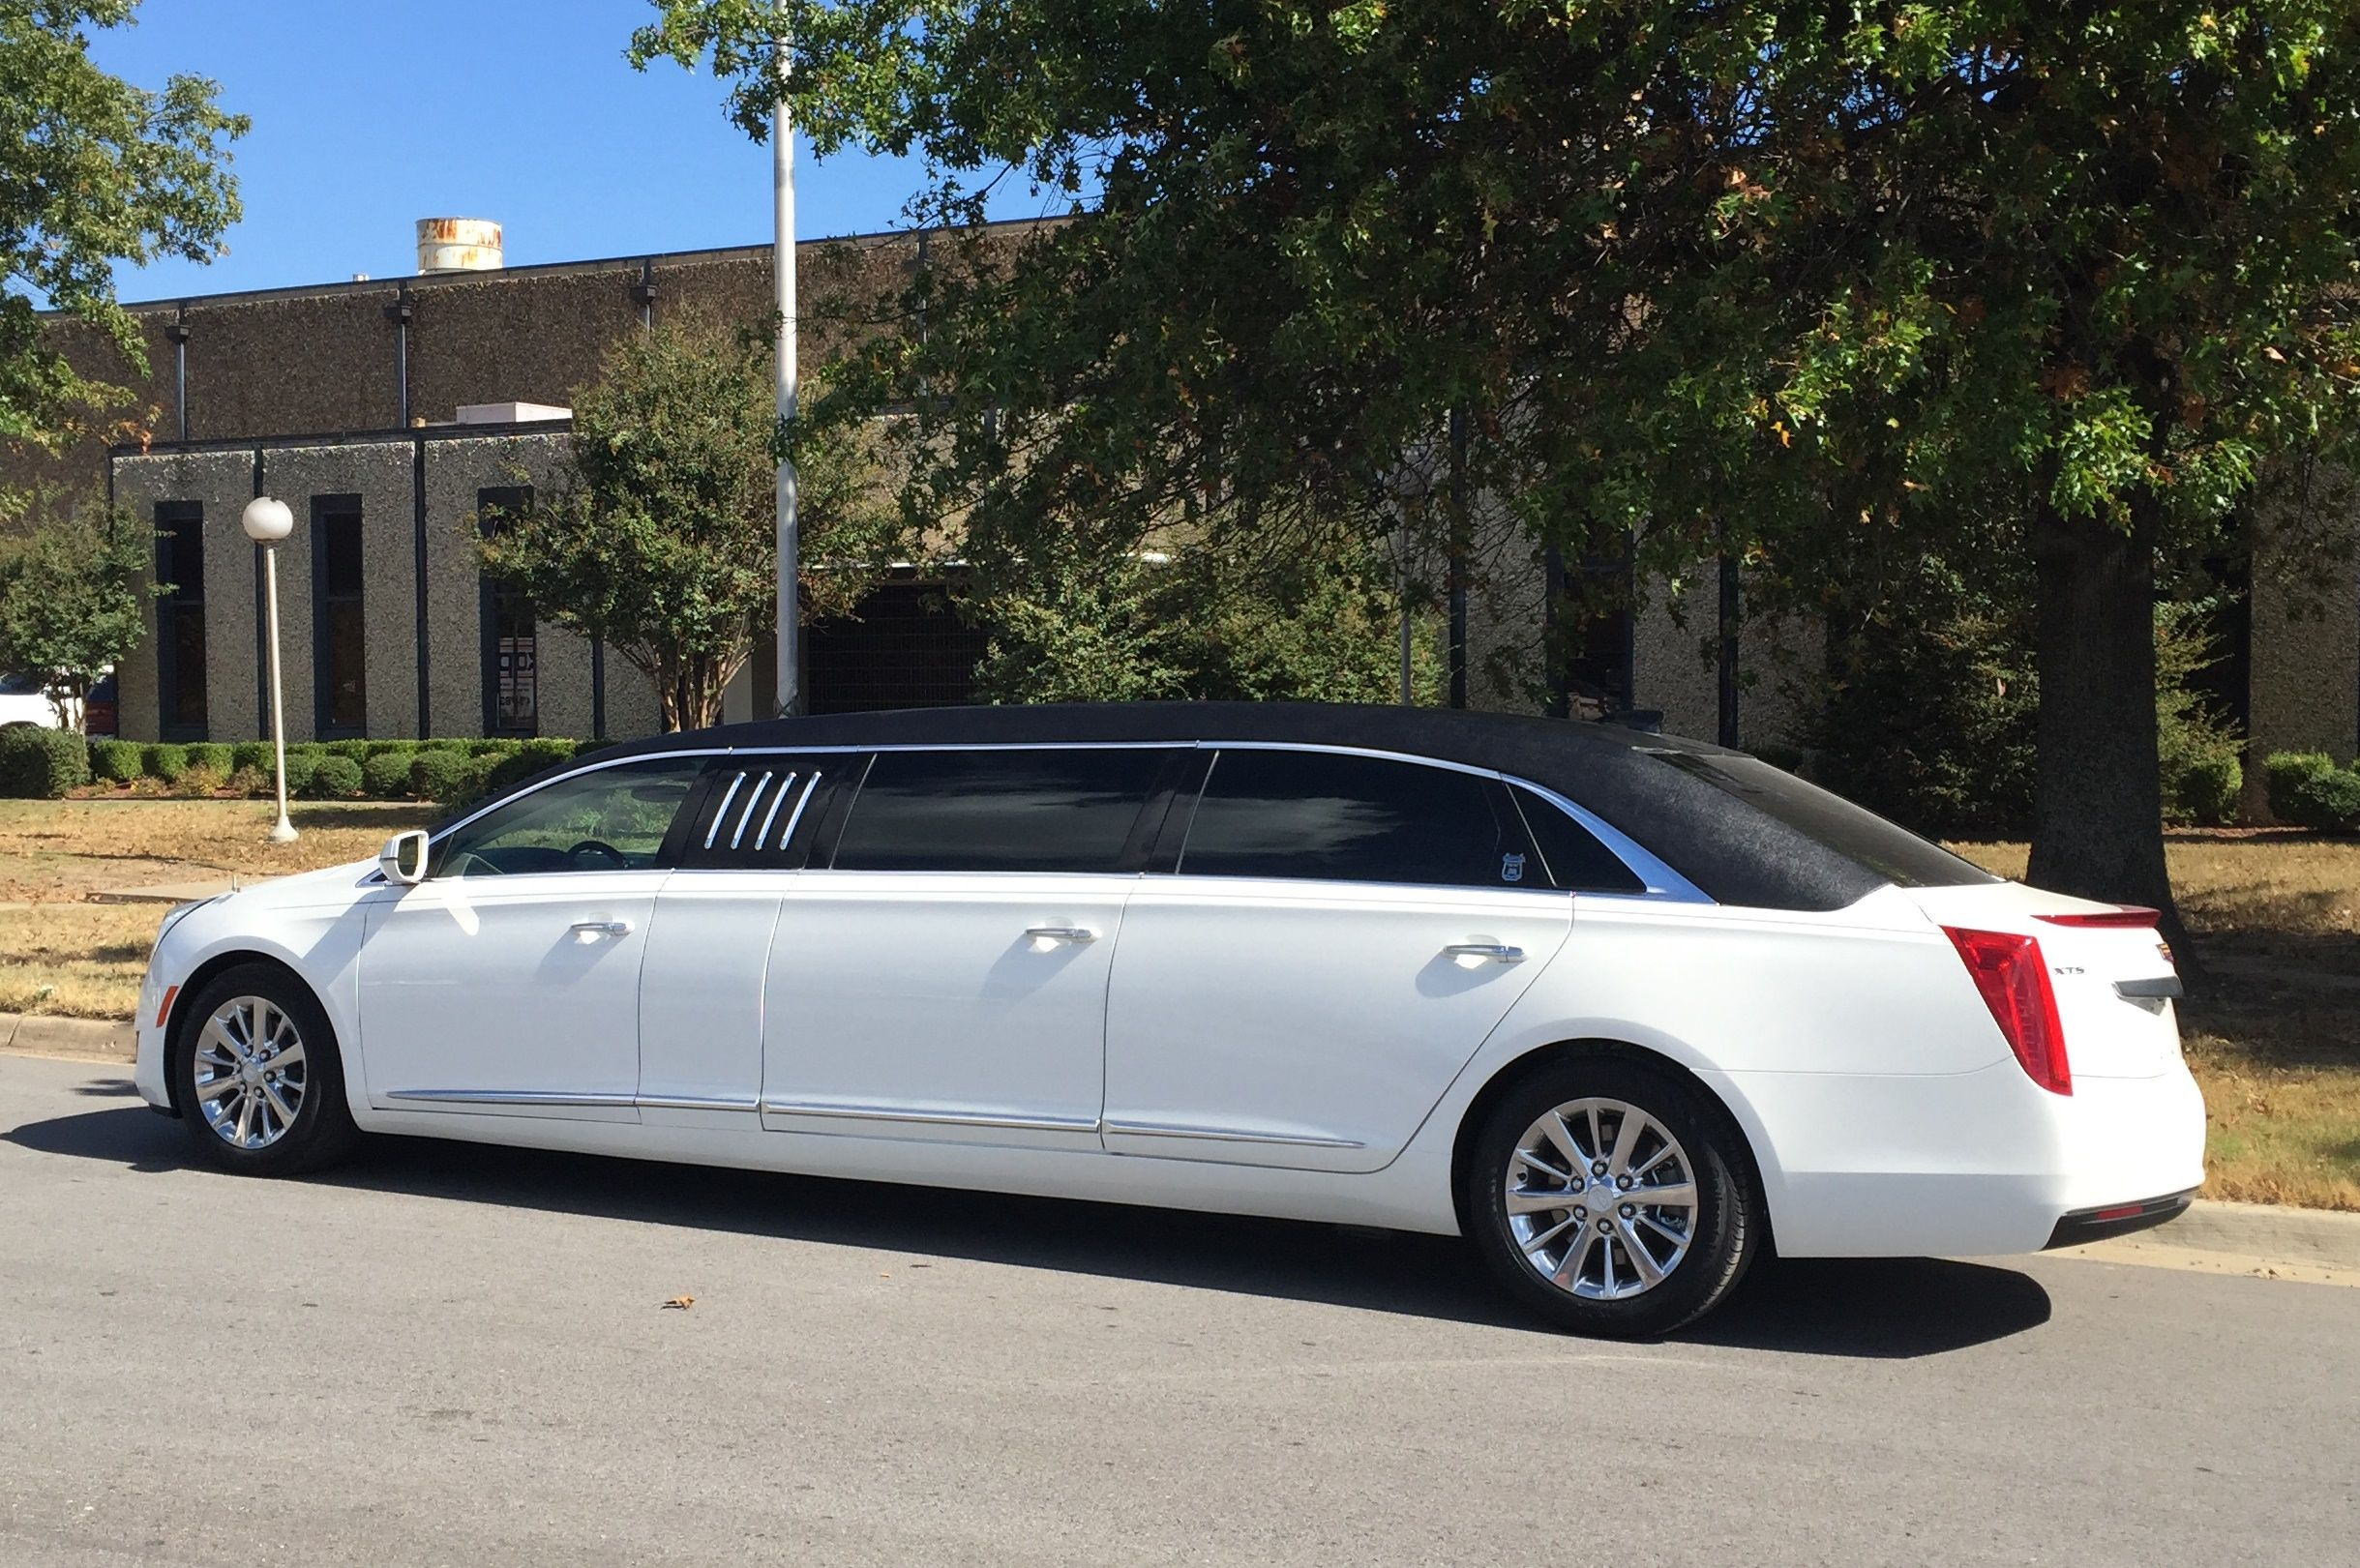 2016 Cadillac XTS 70 Limousine by Armbruster Stageway